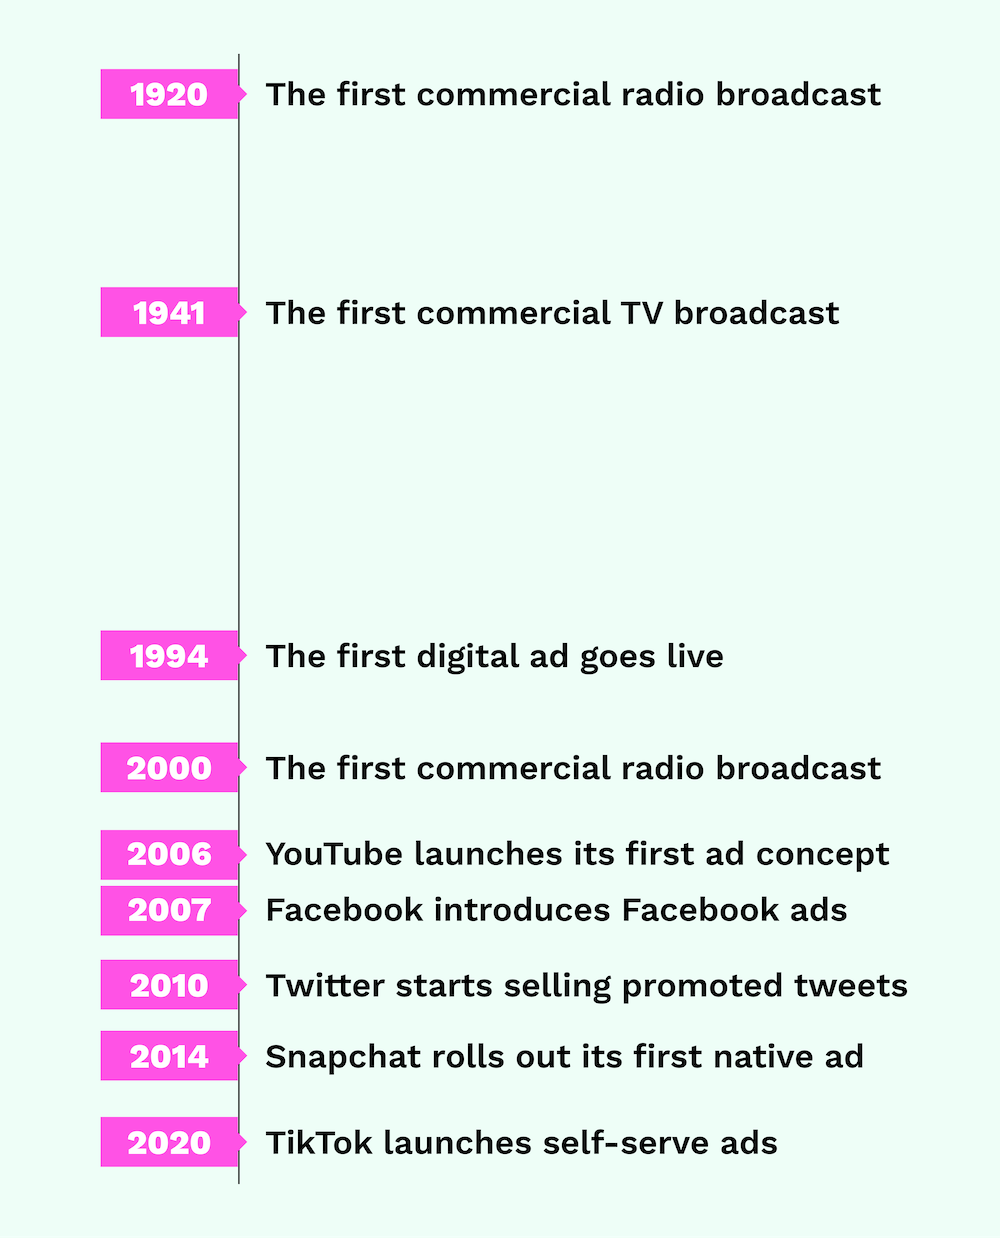 Non-comprehensive timeline of paid channel debuts.